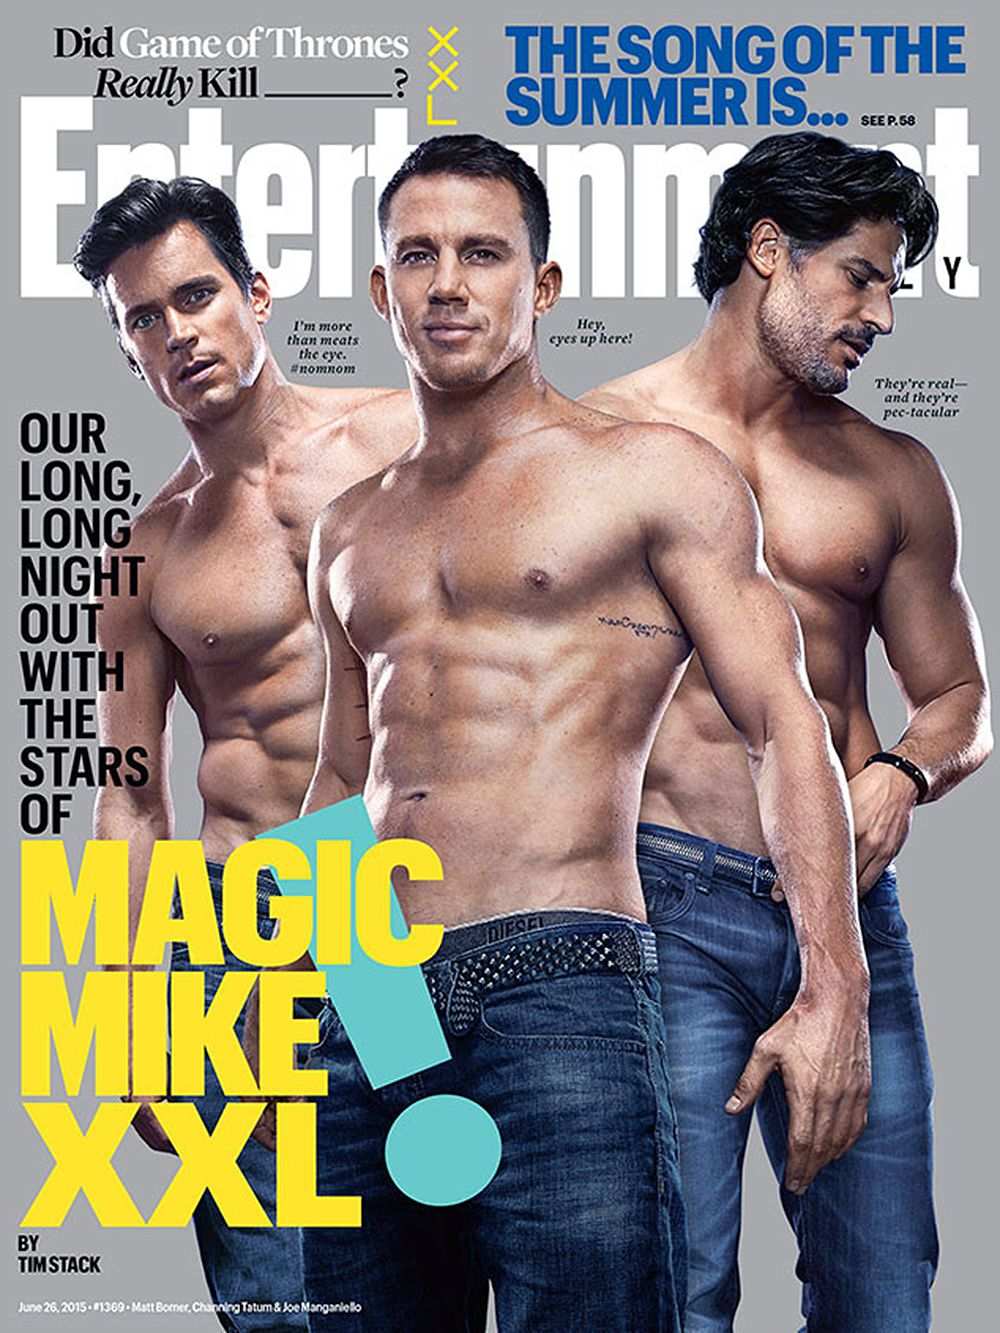 10 LOL Things the Magic Mike XXL Cast Has Said About Waxing and Working Out